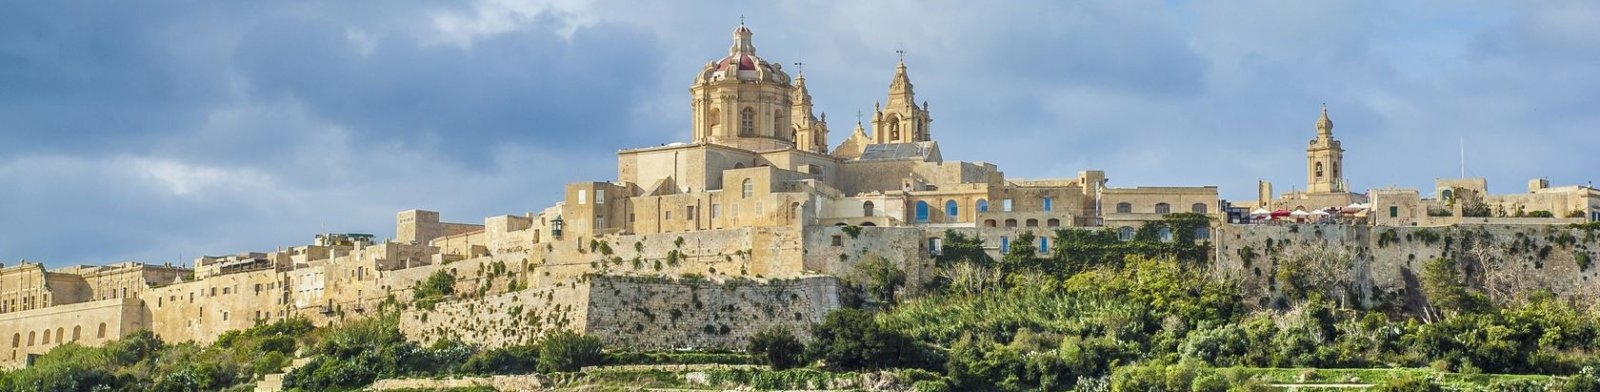 St Paul's Cathedral, Mdina, Malta